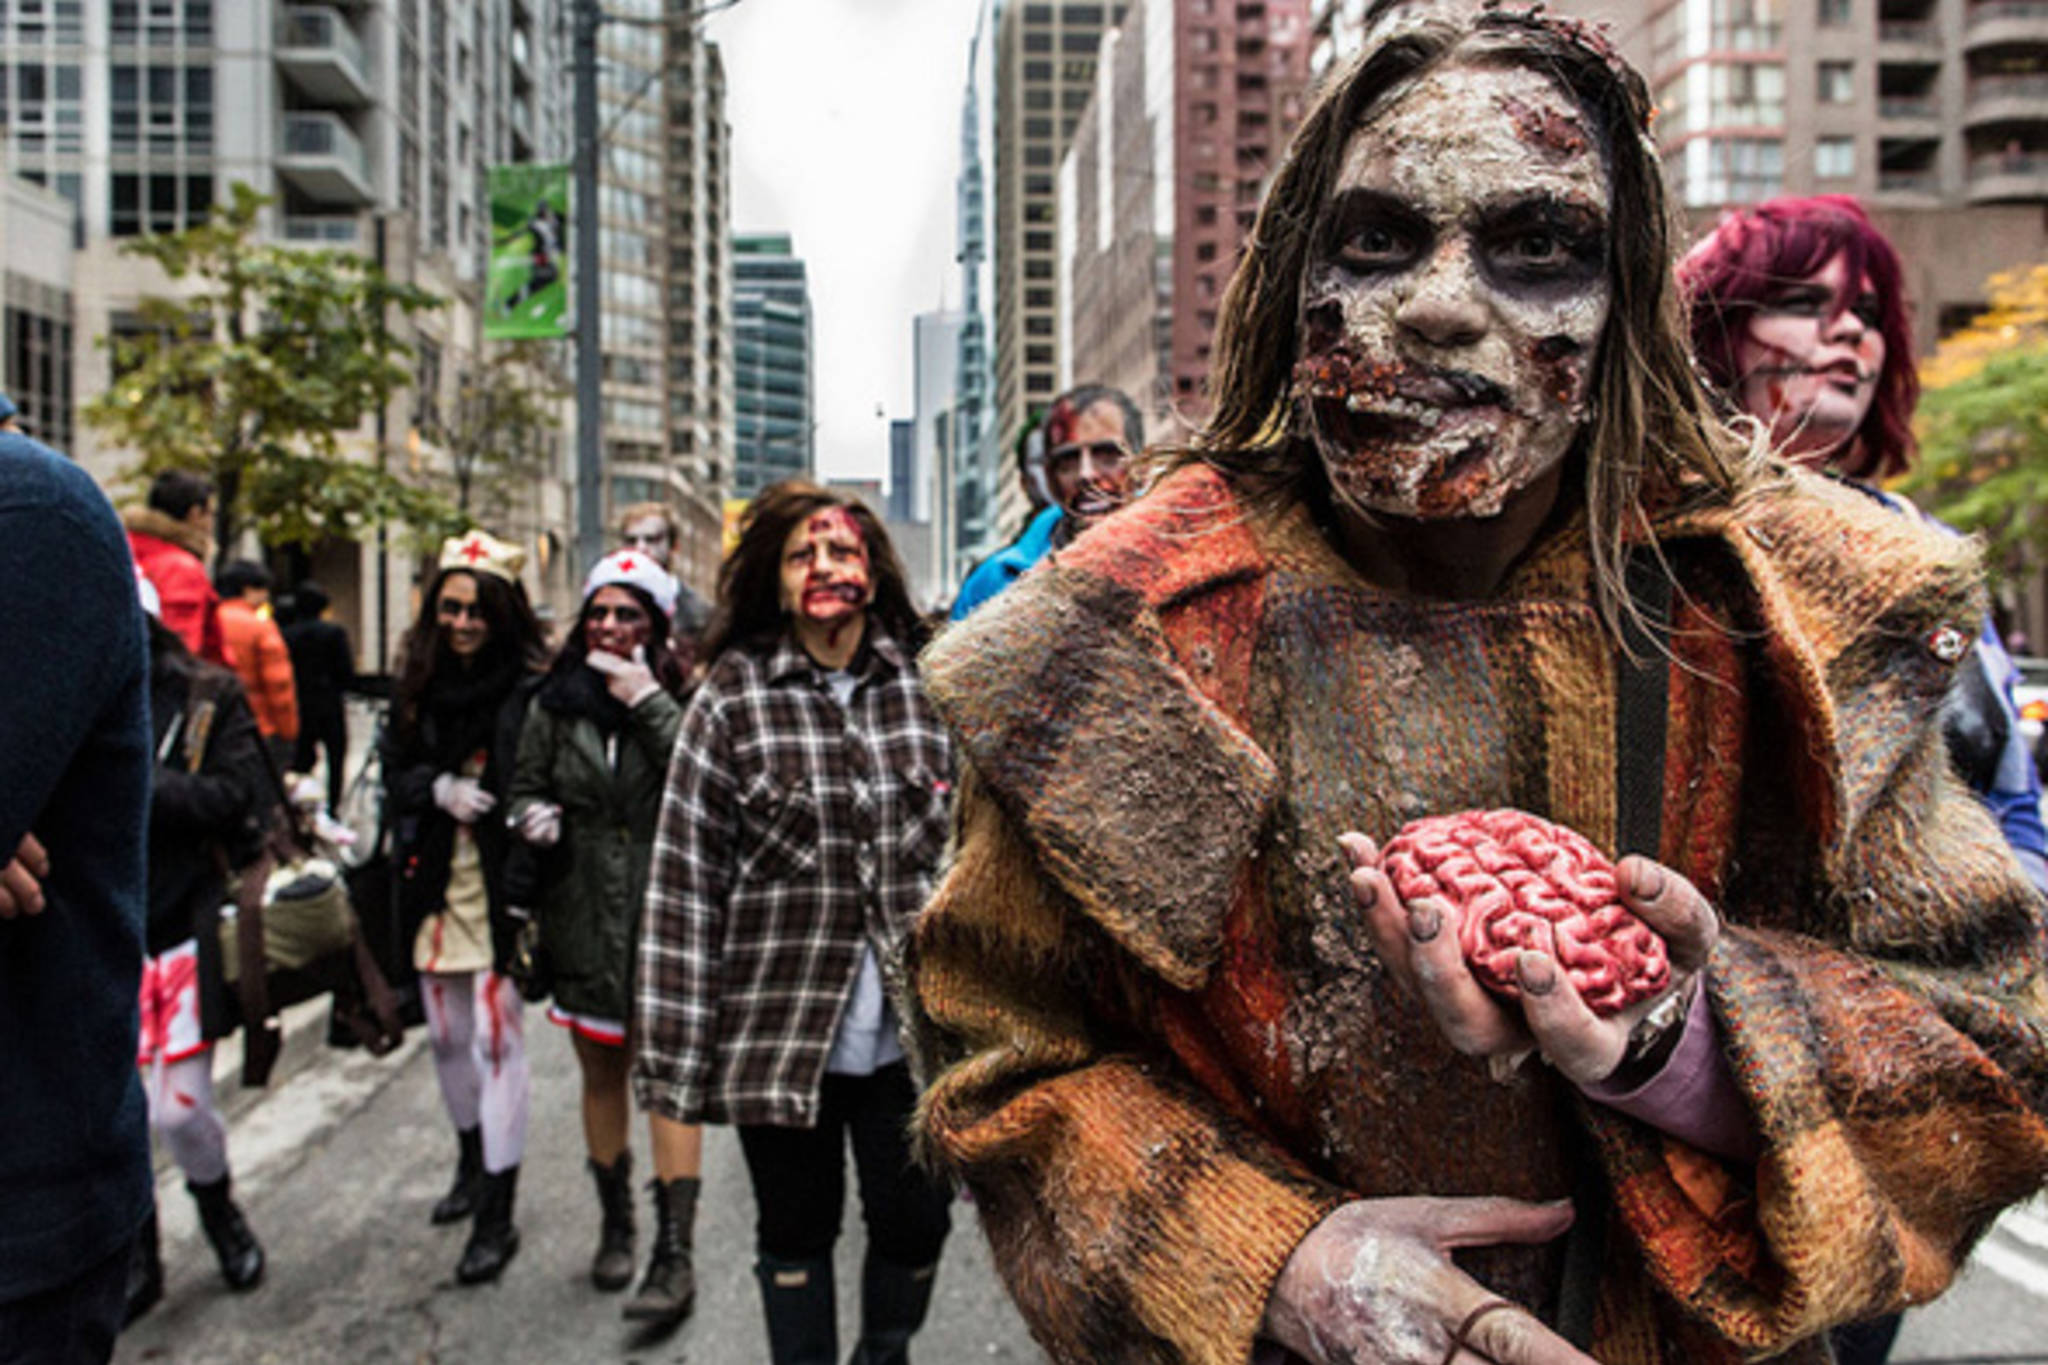 Public festivals called Zombie Walks are popular in many countries across the world